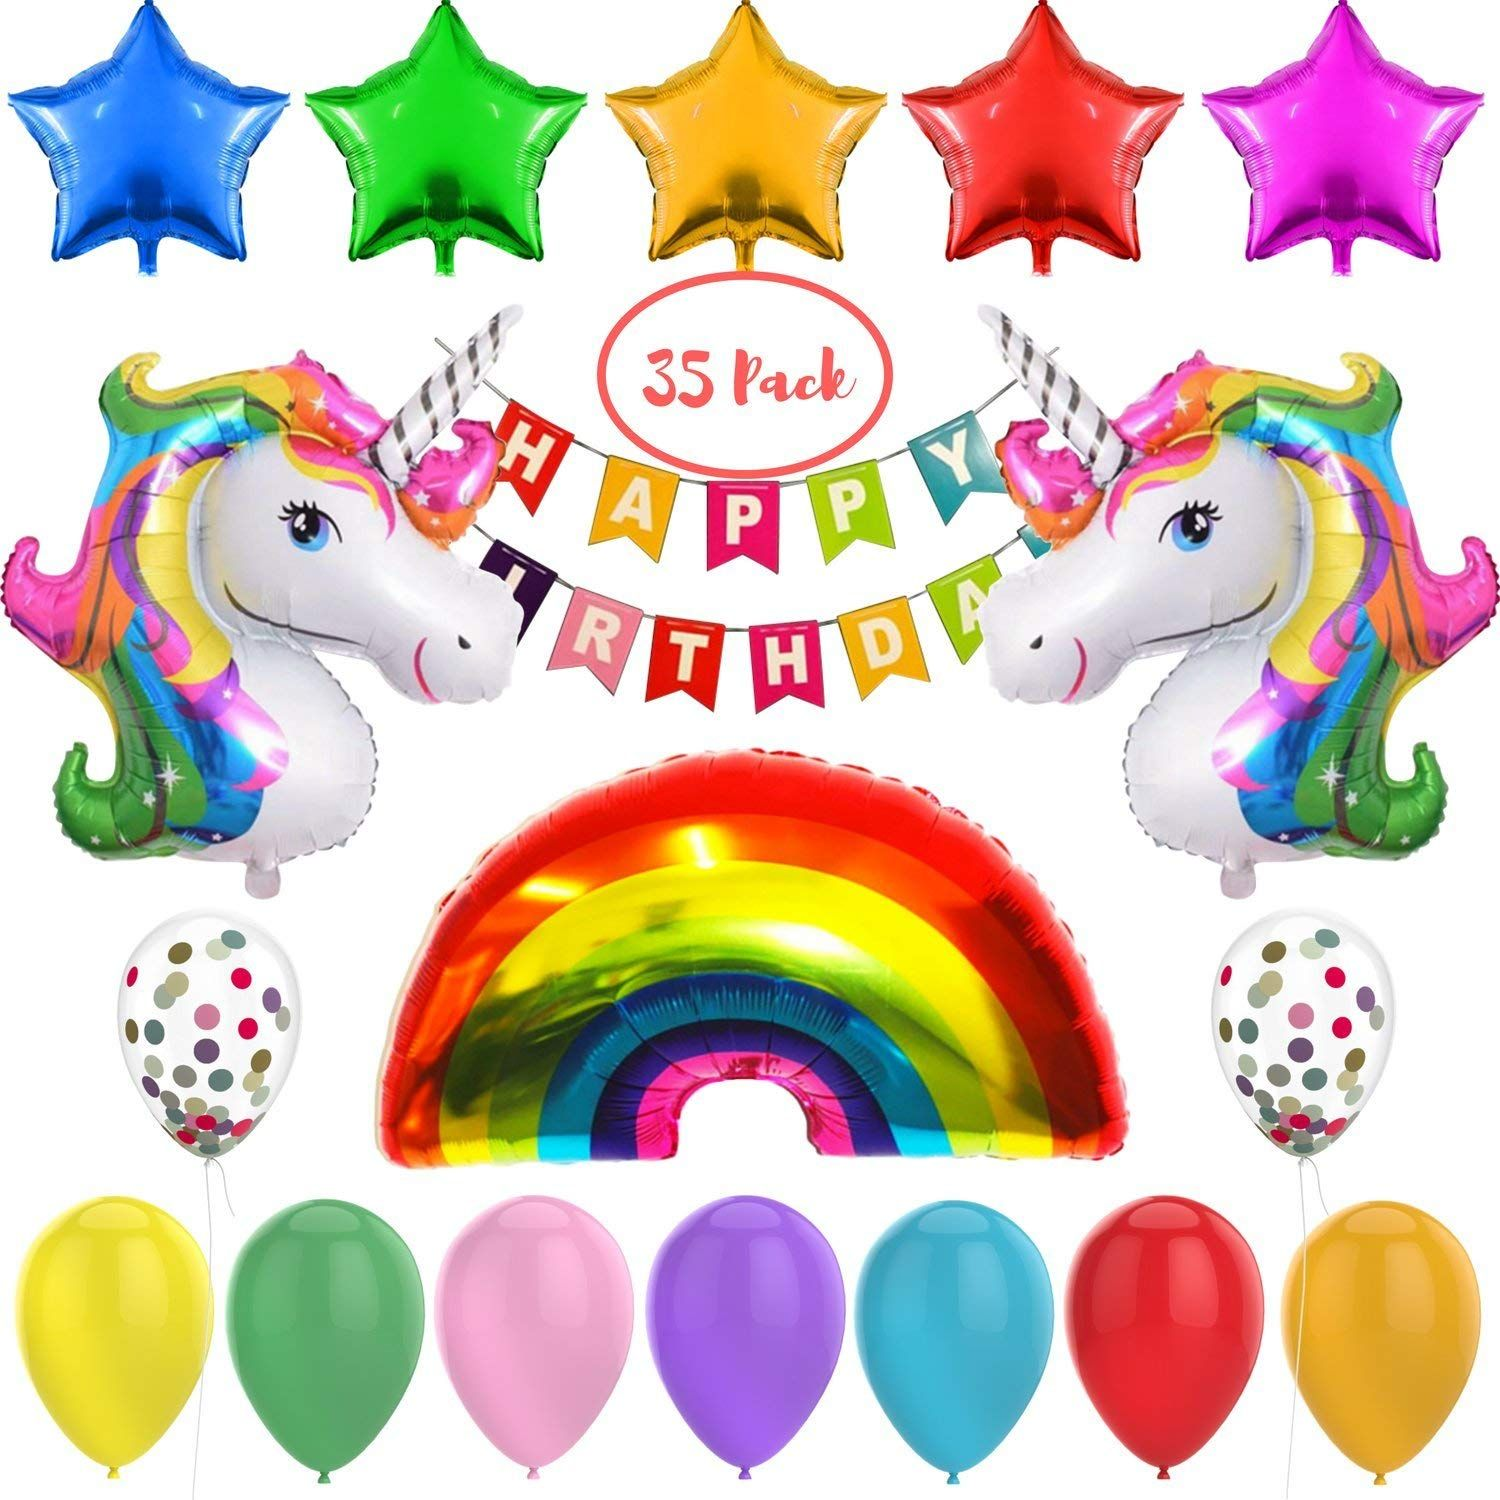 Amazon 35 Pack Unicorn Balloons Just 10 (As of 8/5/2018